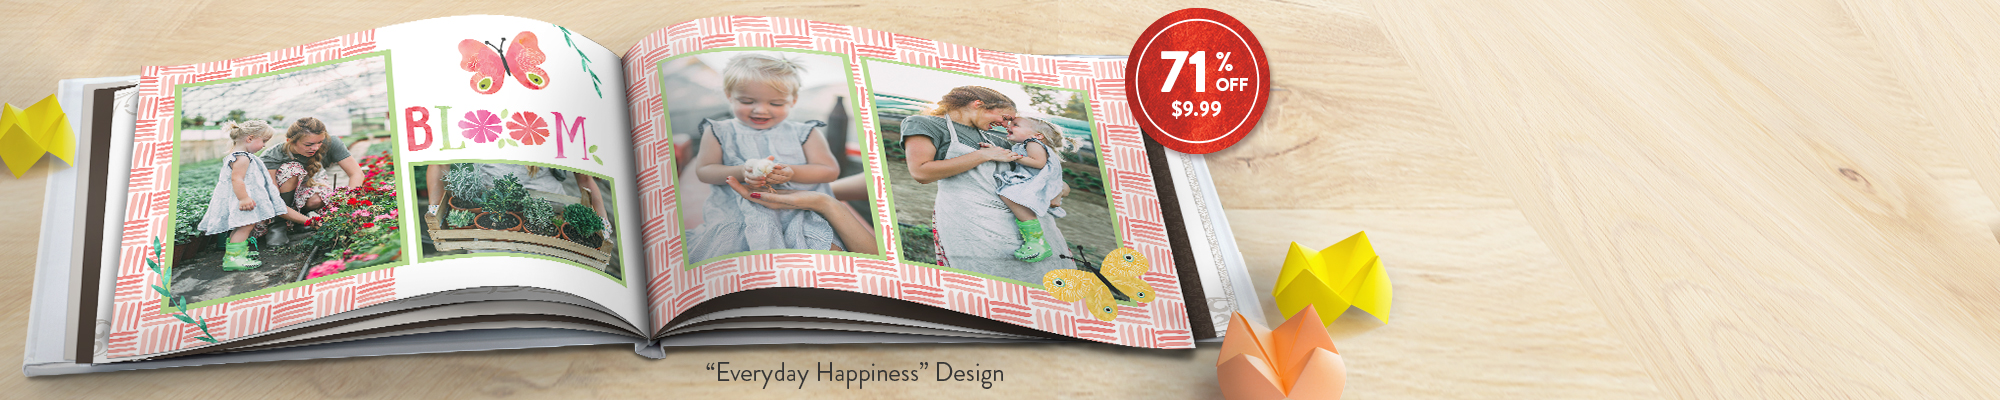 Photo Books : Bring home a best seller! Save 71% on our 8x11 Hardcover Photo Book, regularly $34.99, now $9.99! Use code TOPBOOK